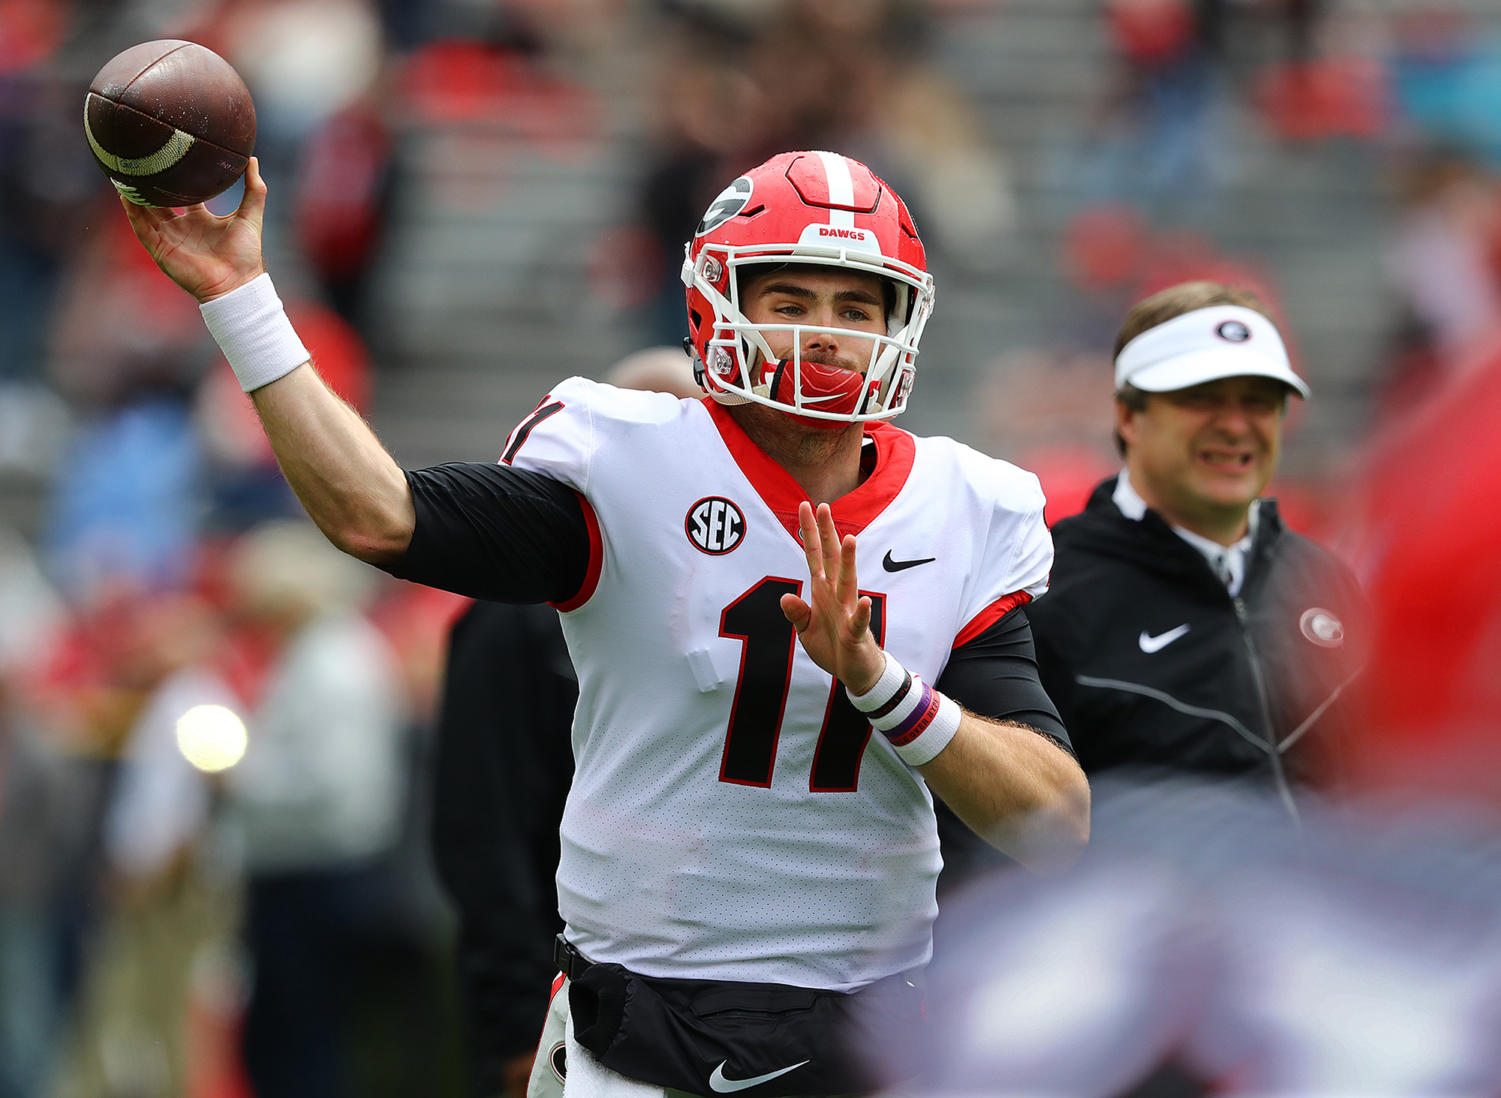 Georgia head coach Kirby Smart looks on while Jake Fromm (11) throws a pass during the annual G-Day scrimmage on Saturday, April 20 at Sanford Stadium in Athens, Georgia.